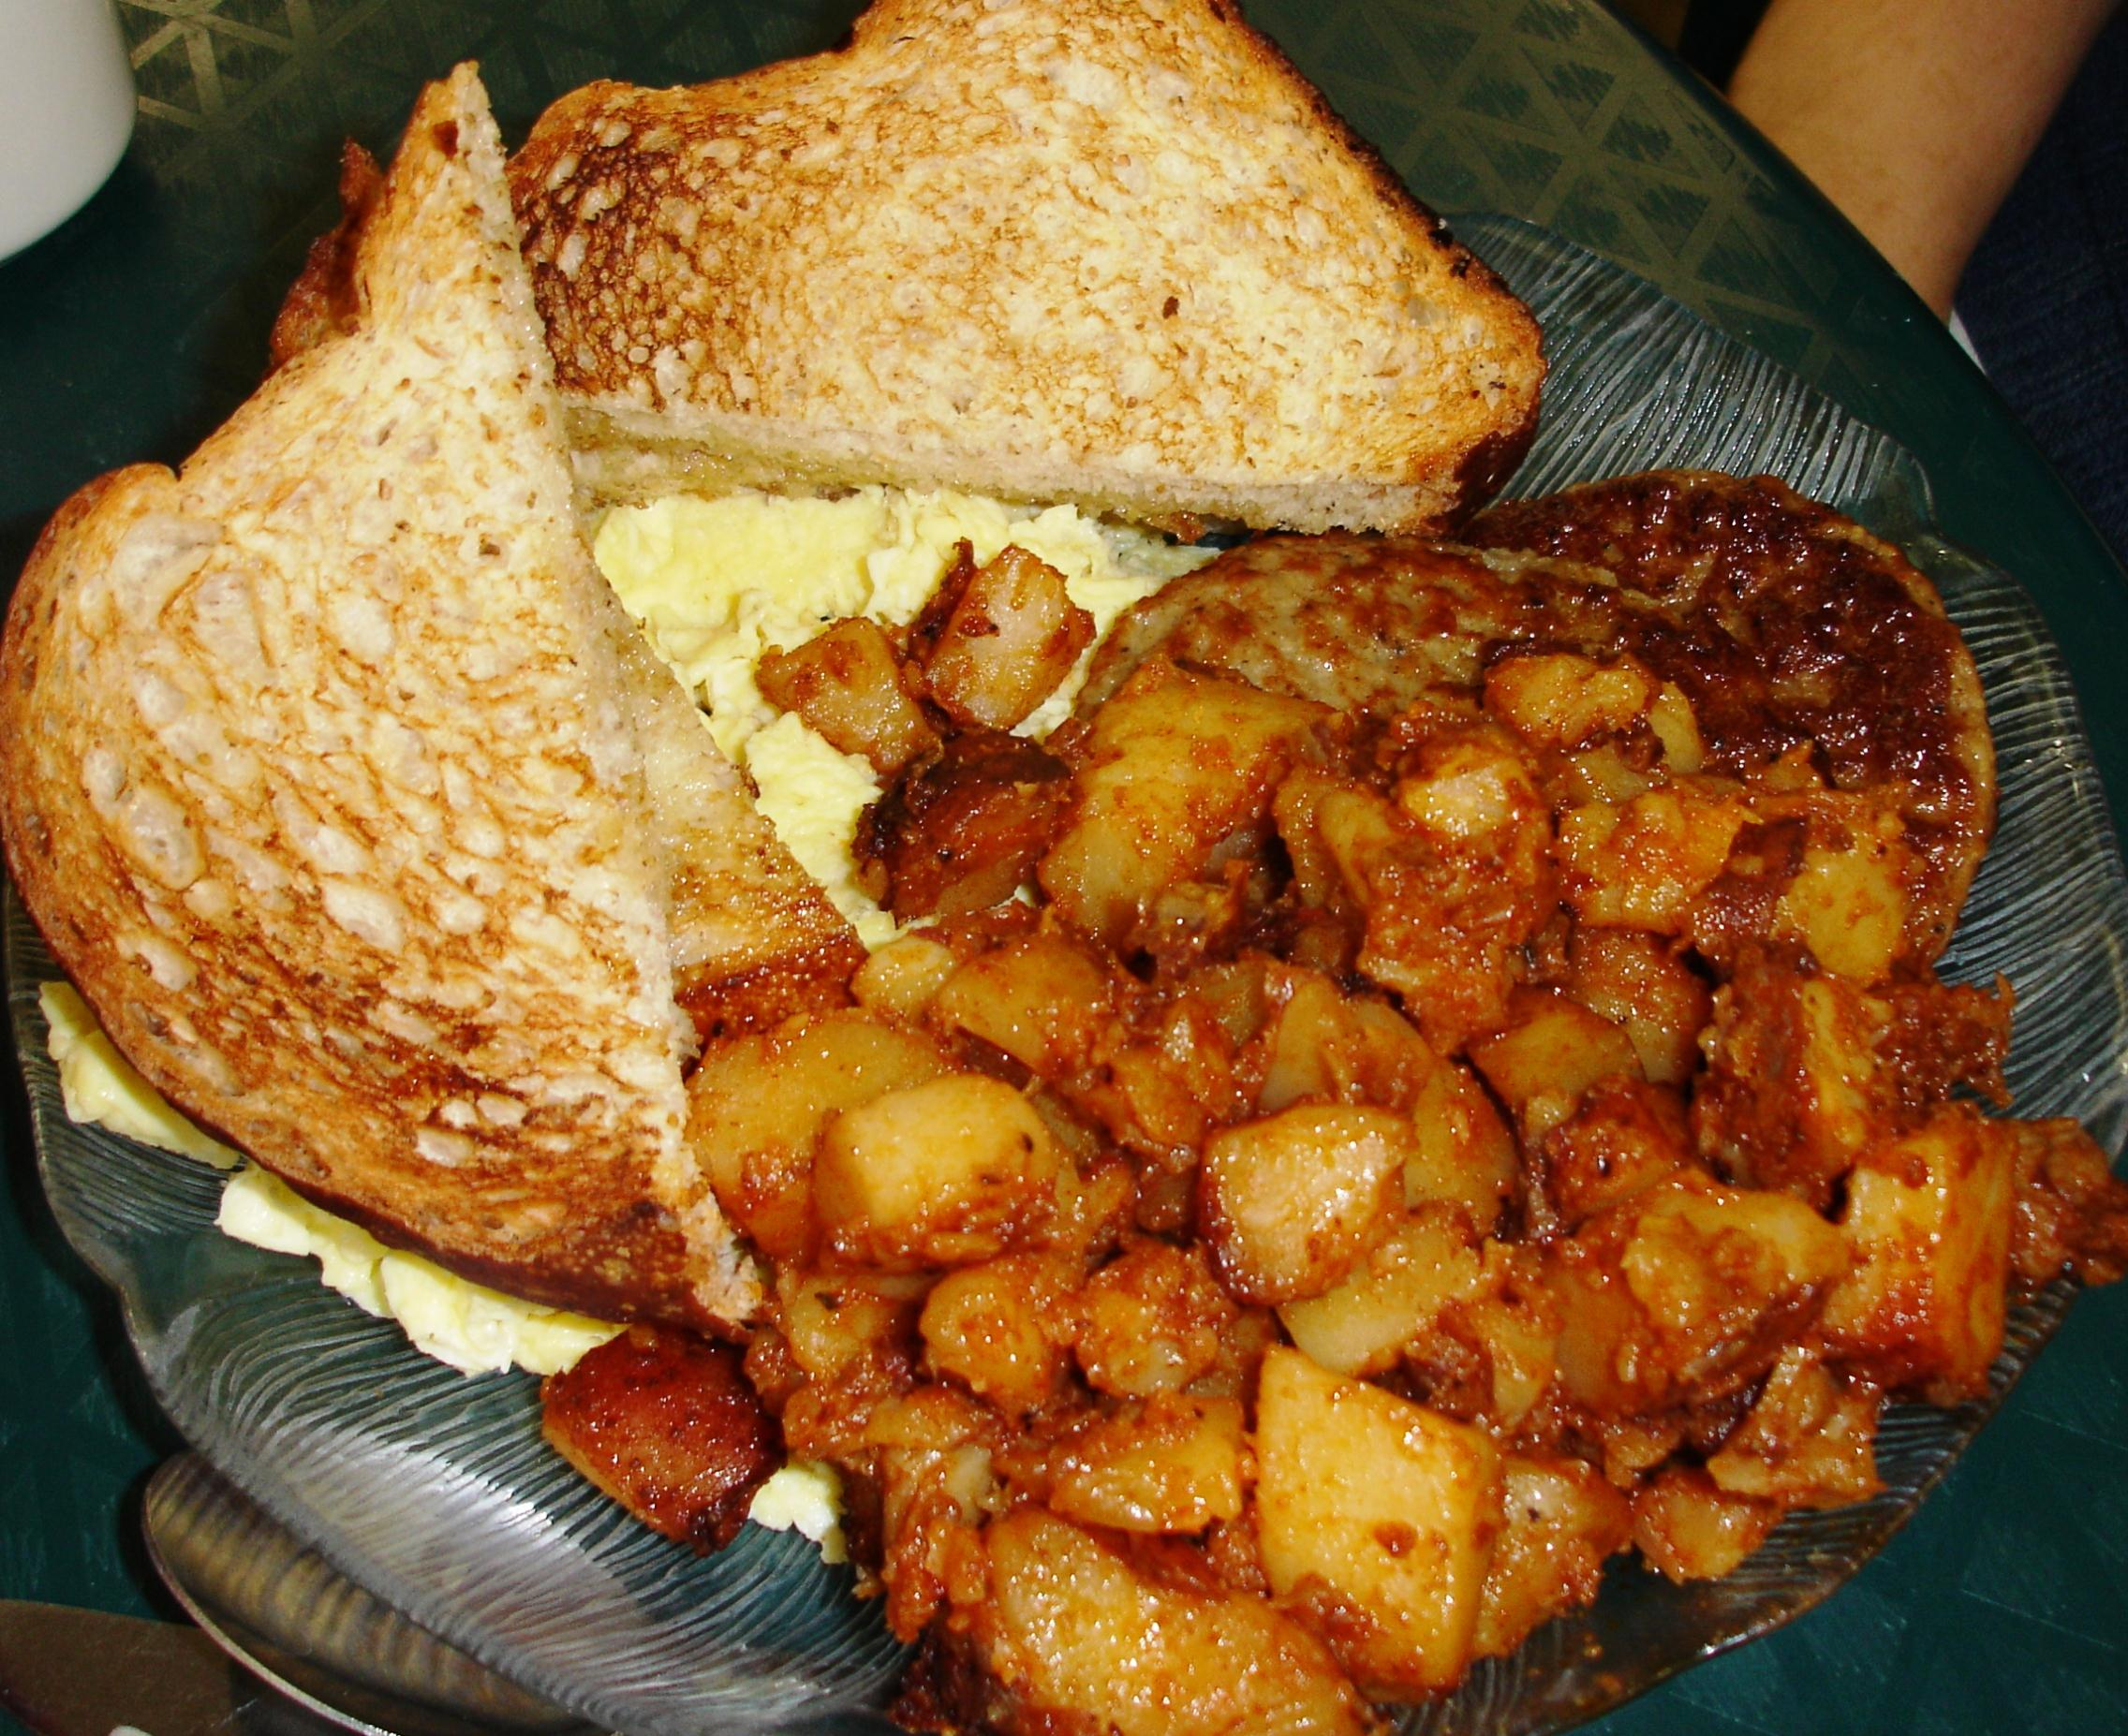 Bread for the light-textured toast is baked here. Home fries, soft and well-seasoned, are comforting.